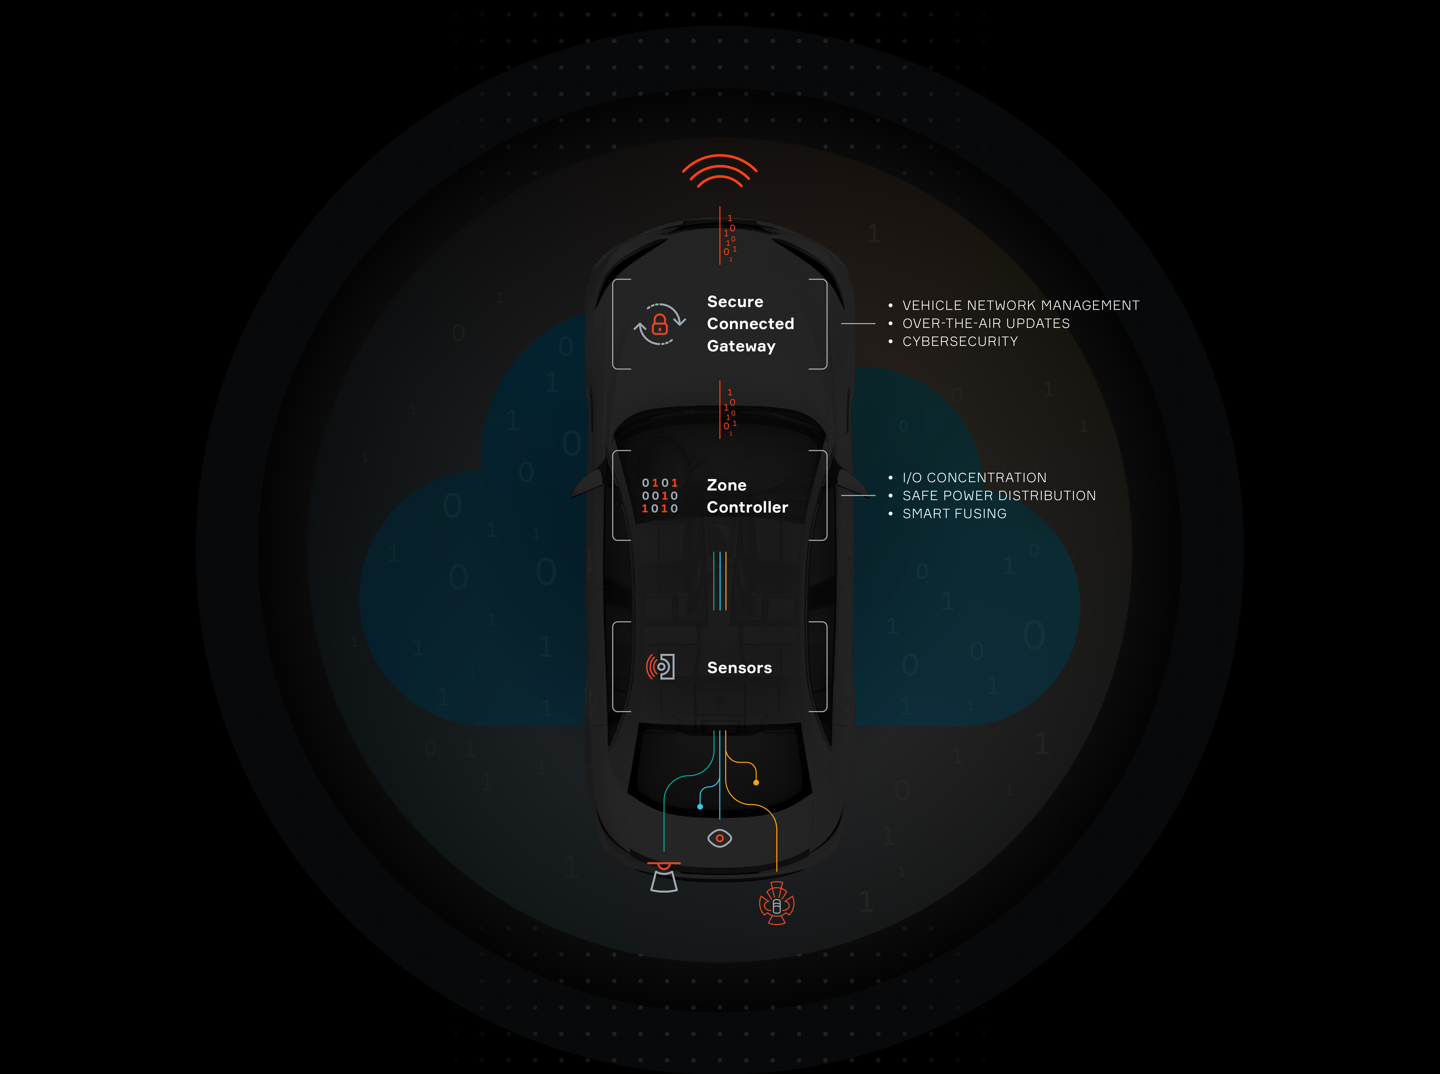 Aptiv Connectivity and Security